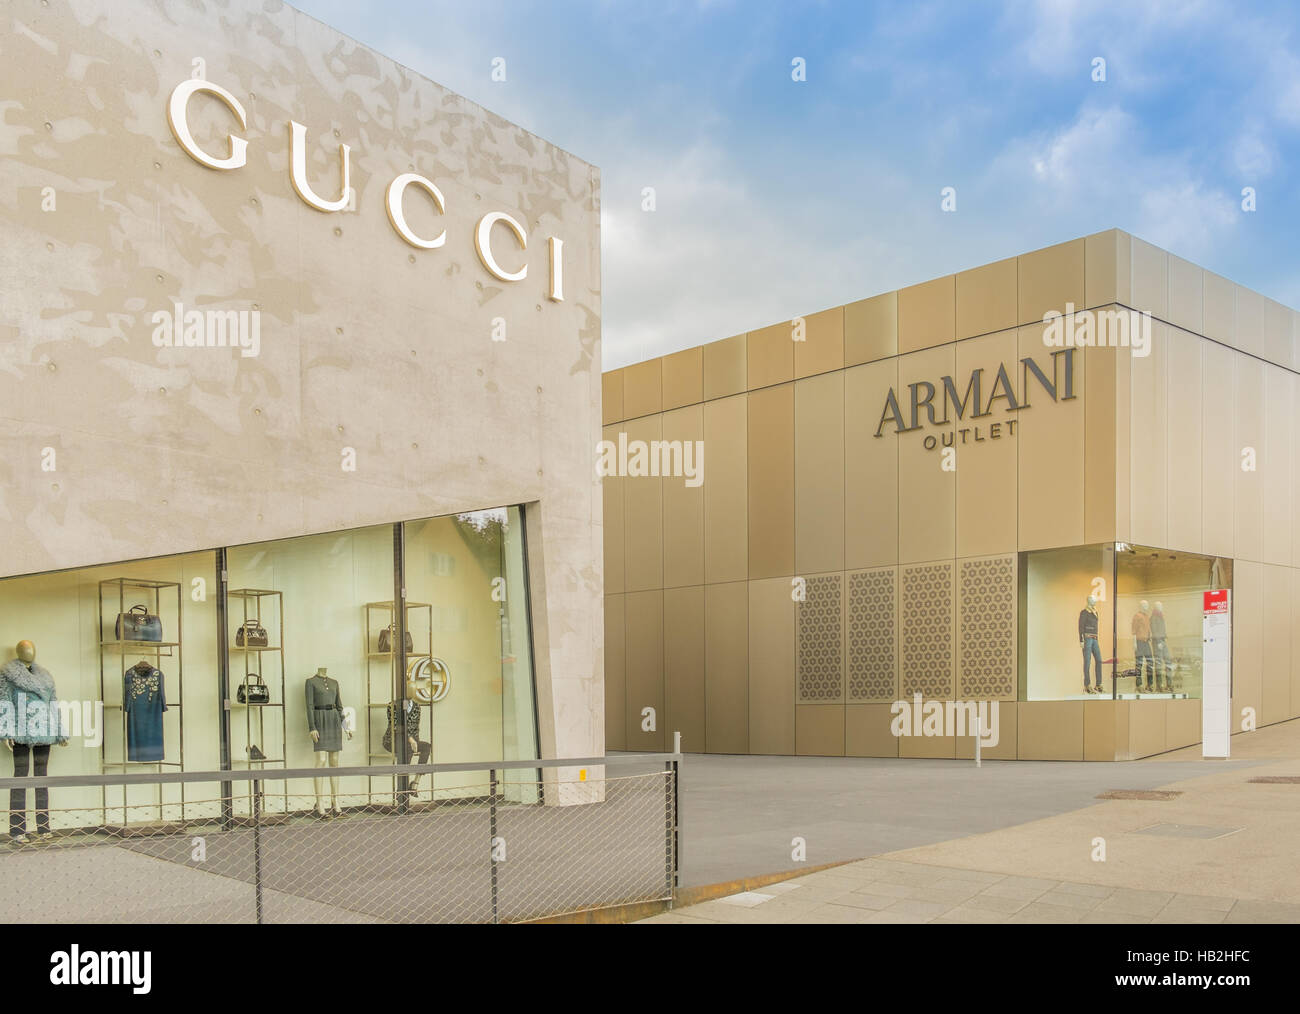 new product 0fba9 19c7d gucci, armani outlet Stock Photo: 127291456 - Alamy